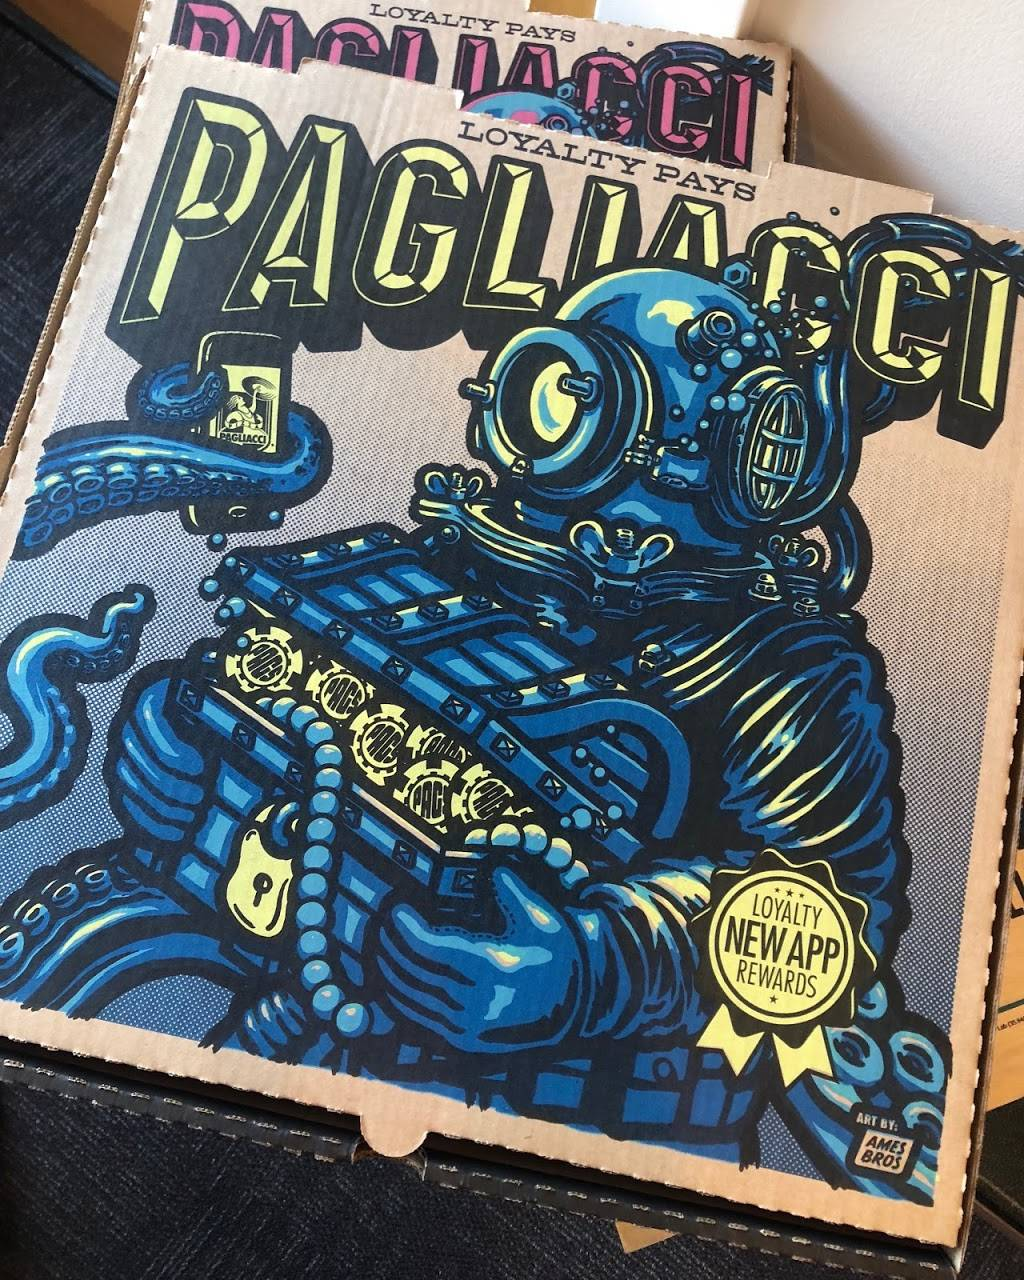 Pagliacci Pizza - meal delivery  | Photo 4 of 10 | Address: 6224 Sand Point Way NE, Seattle, WA 98115, USA | Phone: (206) 726-1717